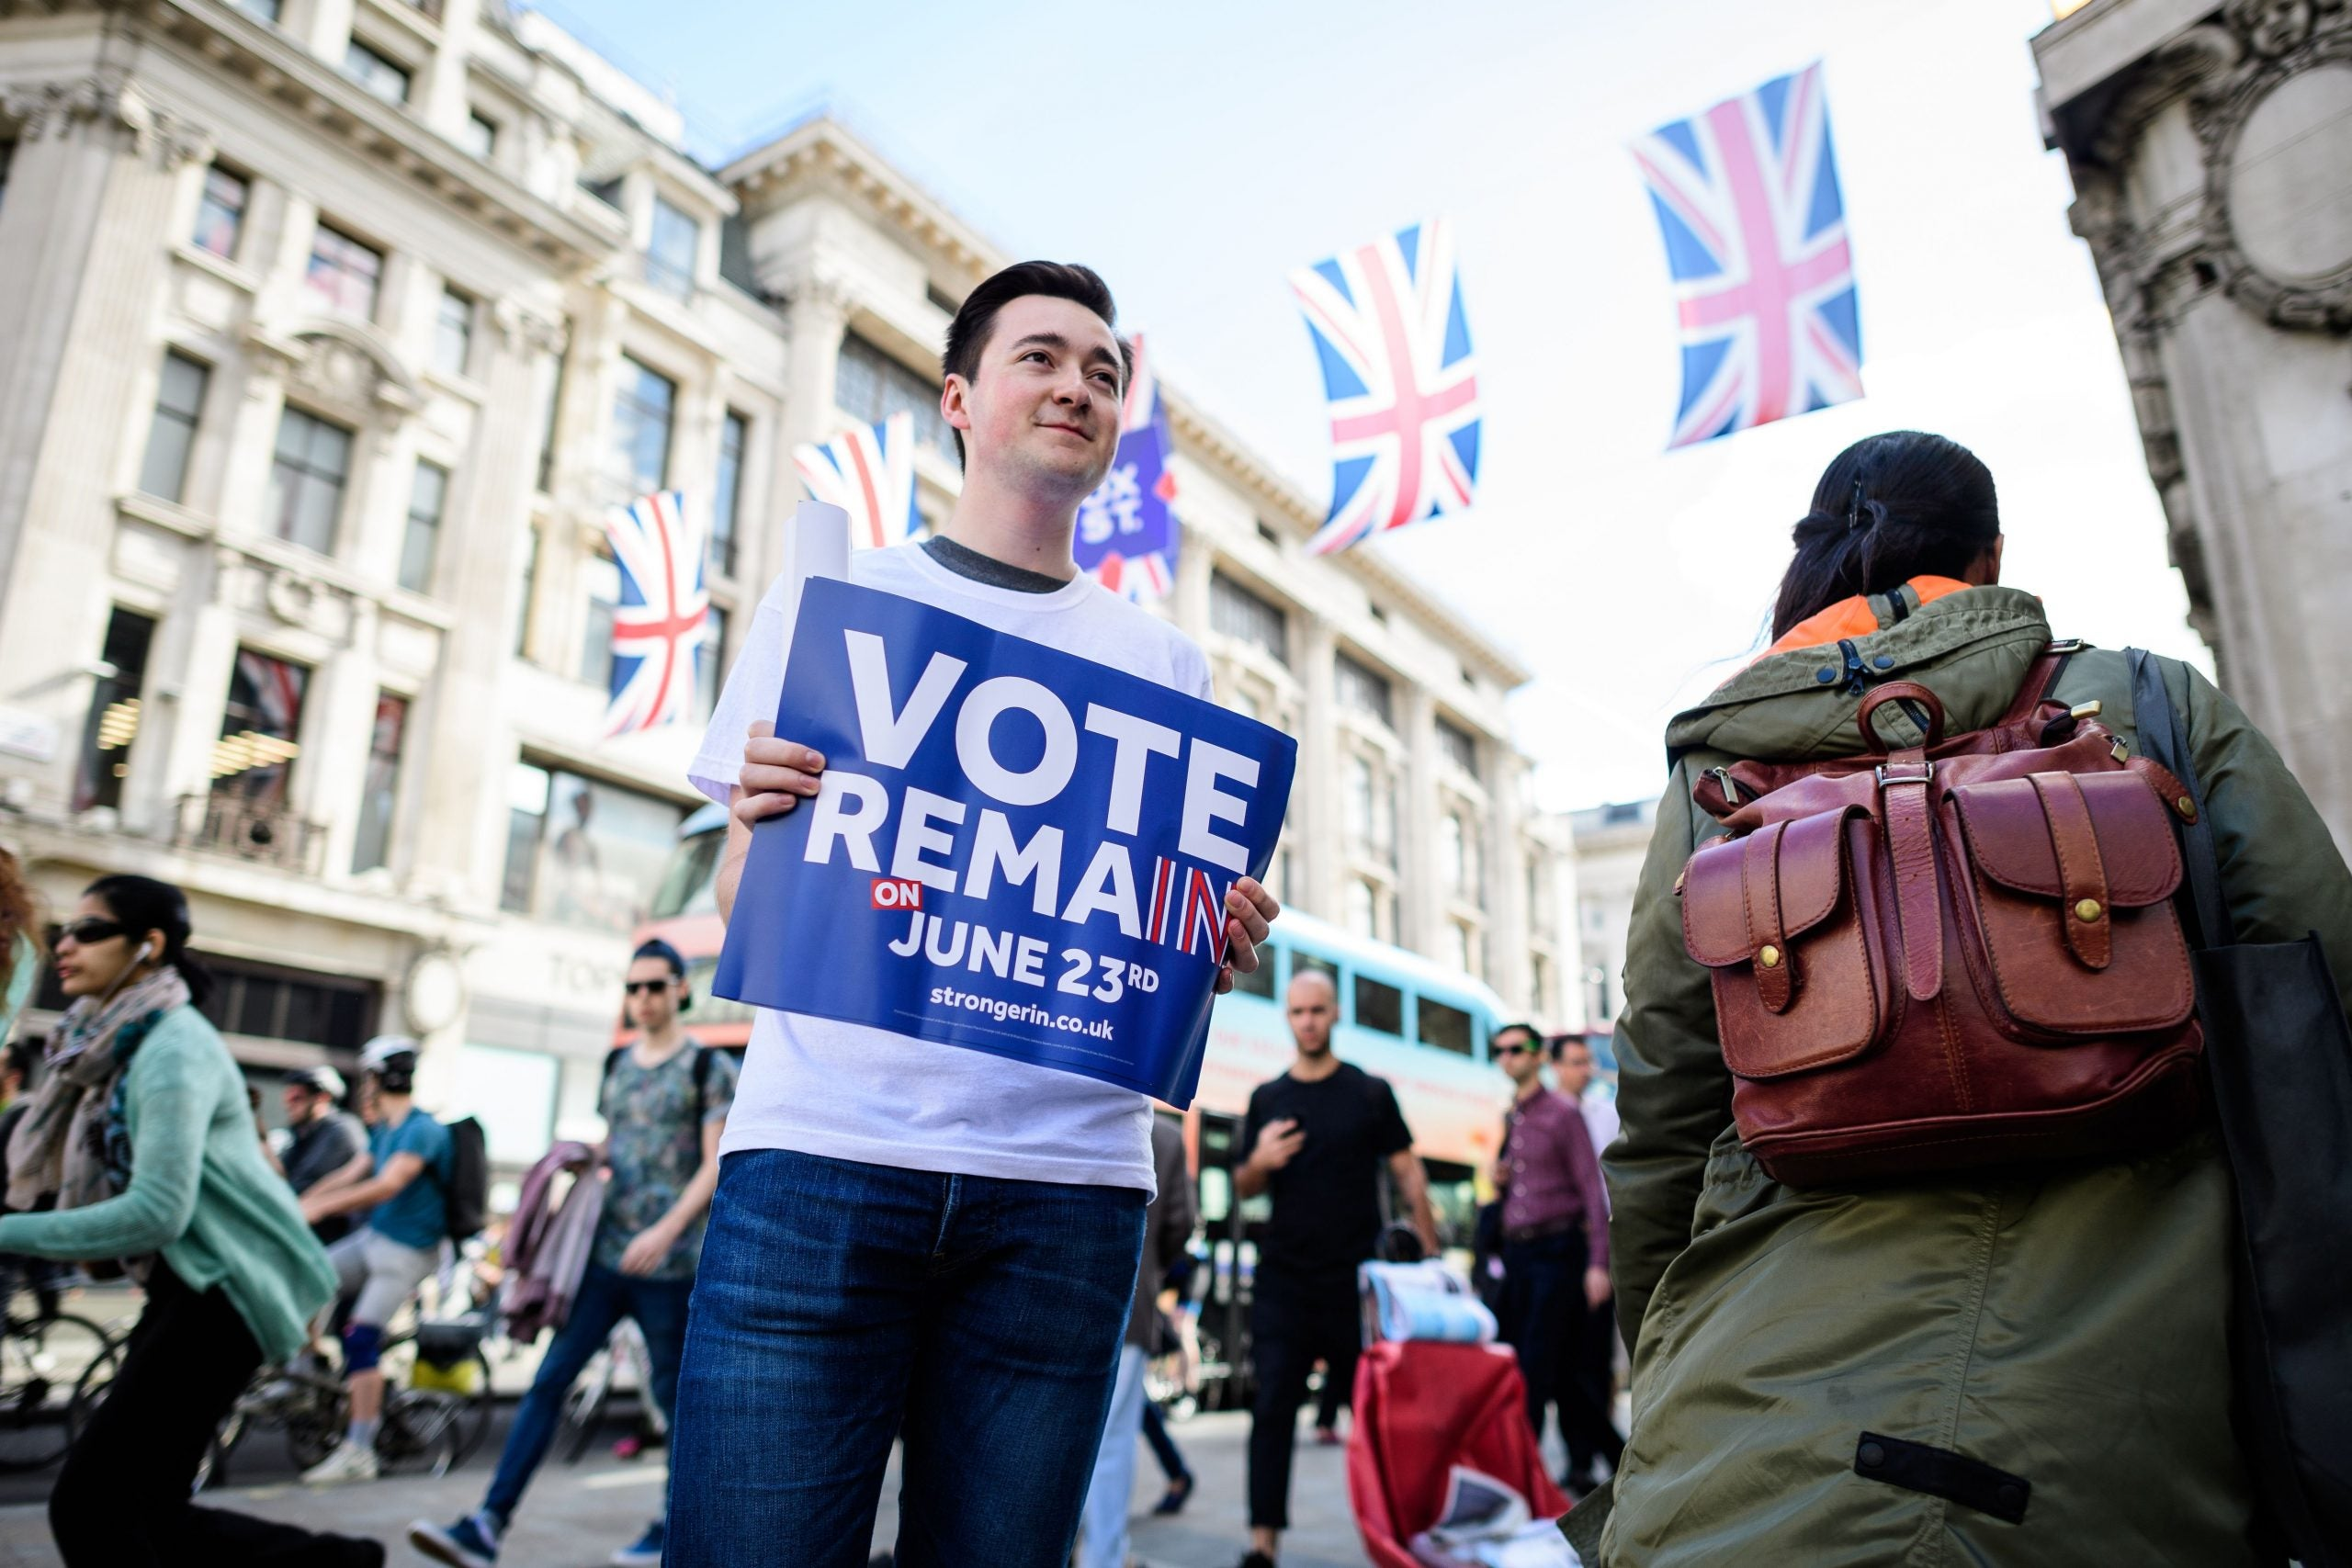 Layla Moran: The EU has been a huge success story for students